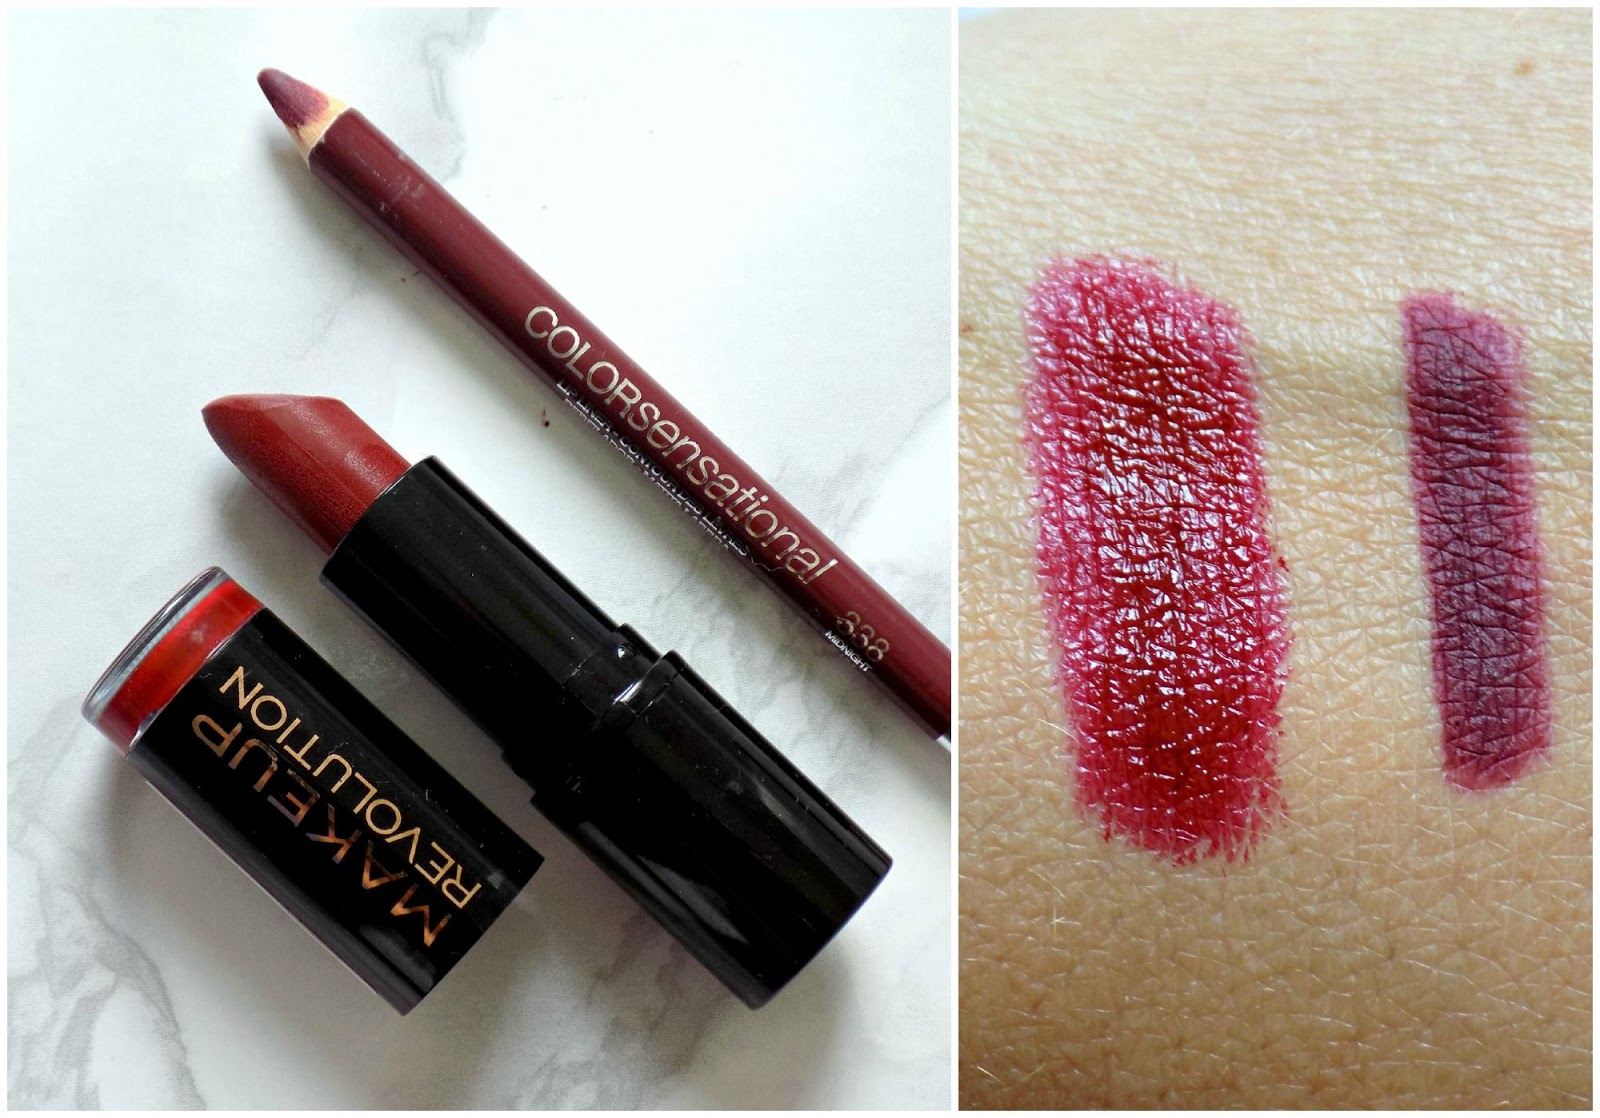 Makeup Revolution Reckless lipstick